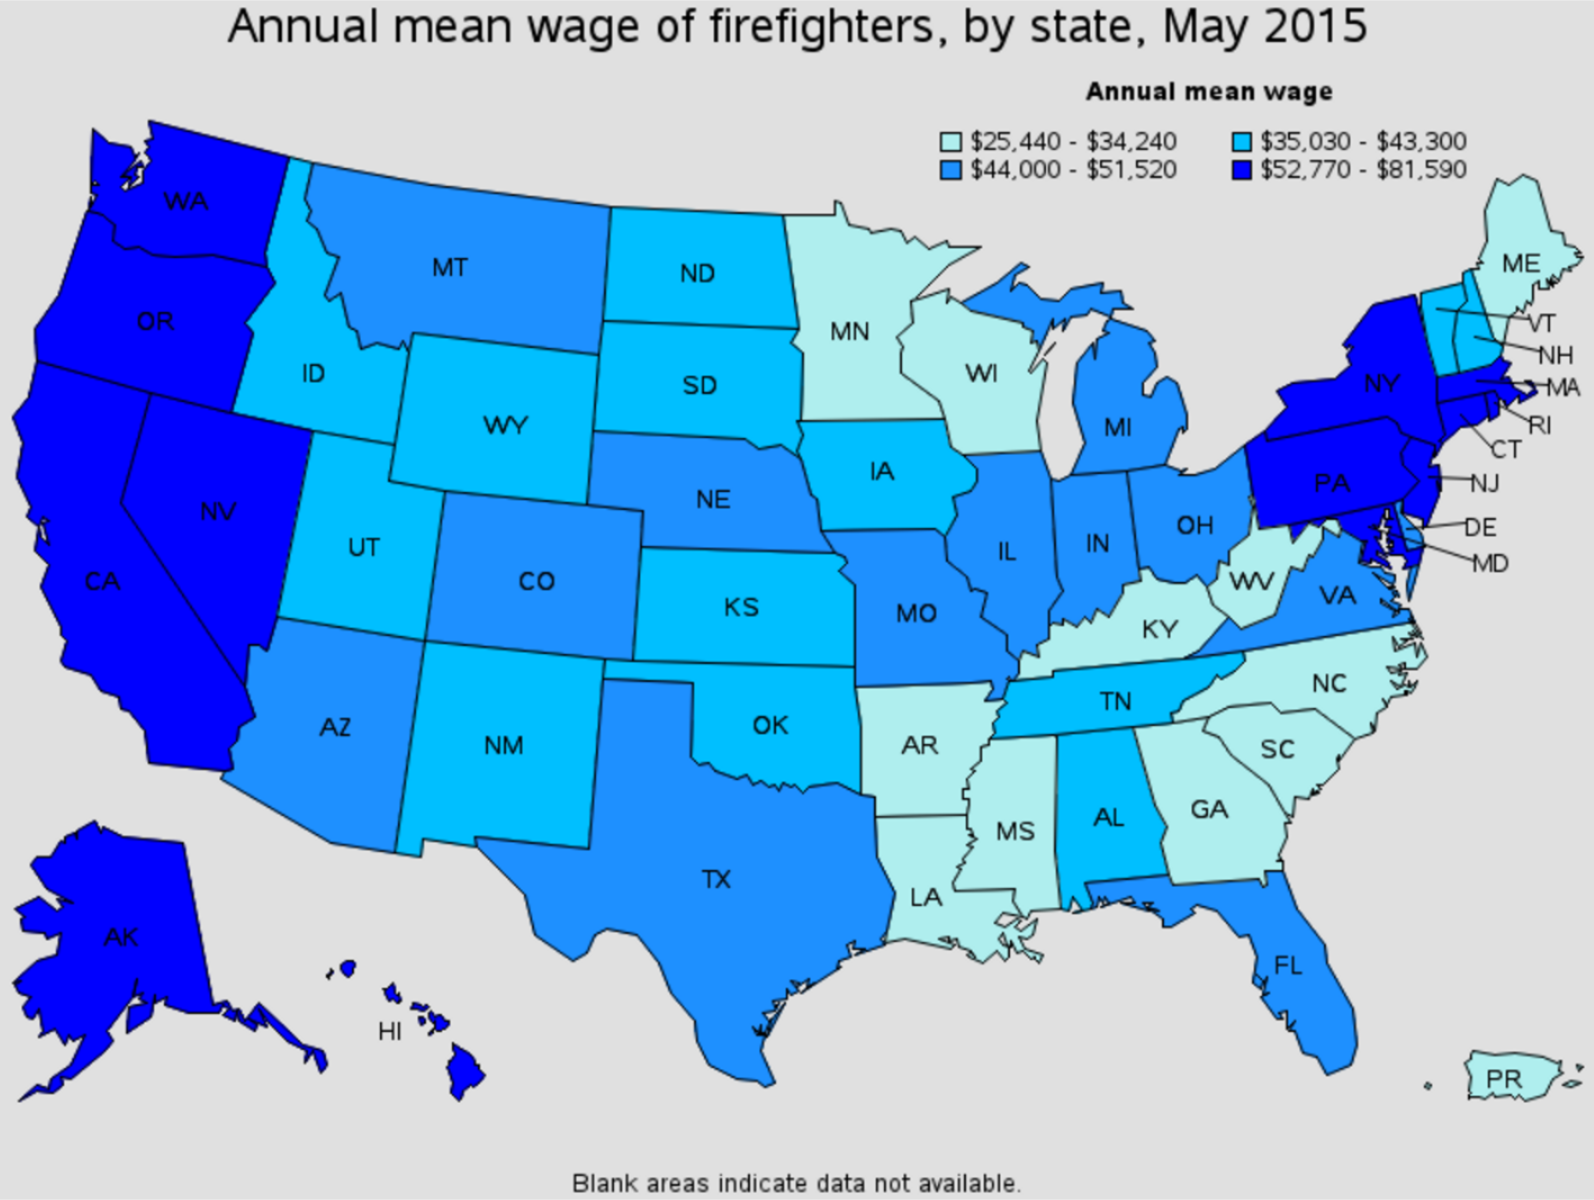 firefighter average salary by state Joliet Illinois